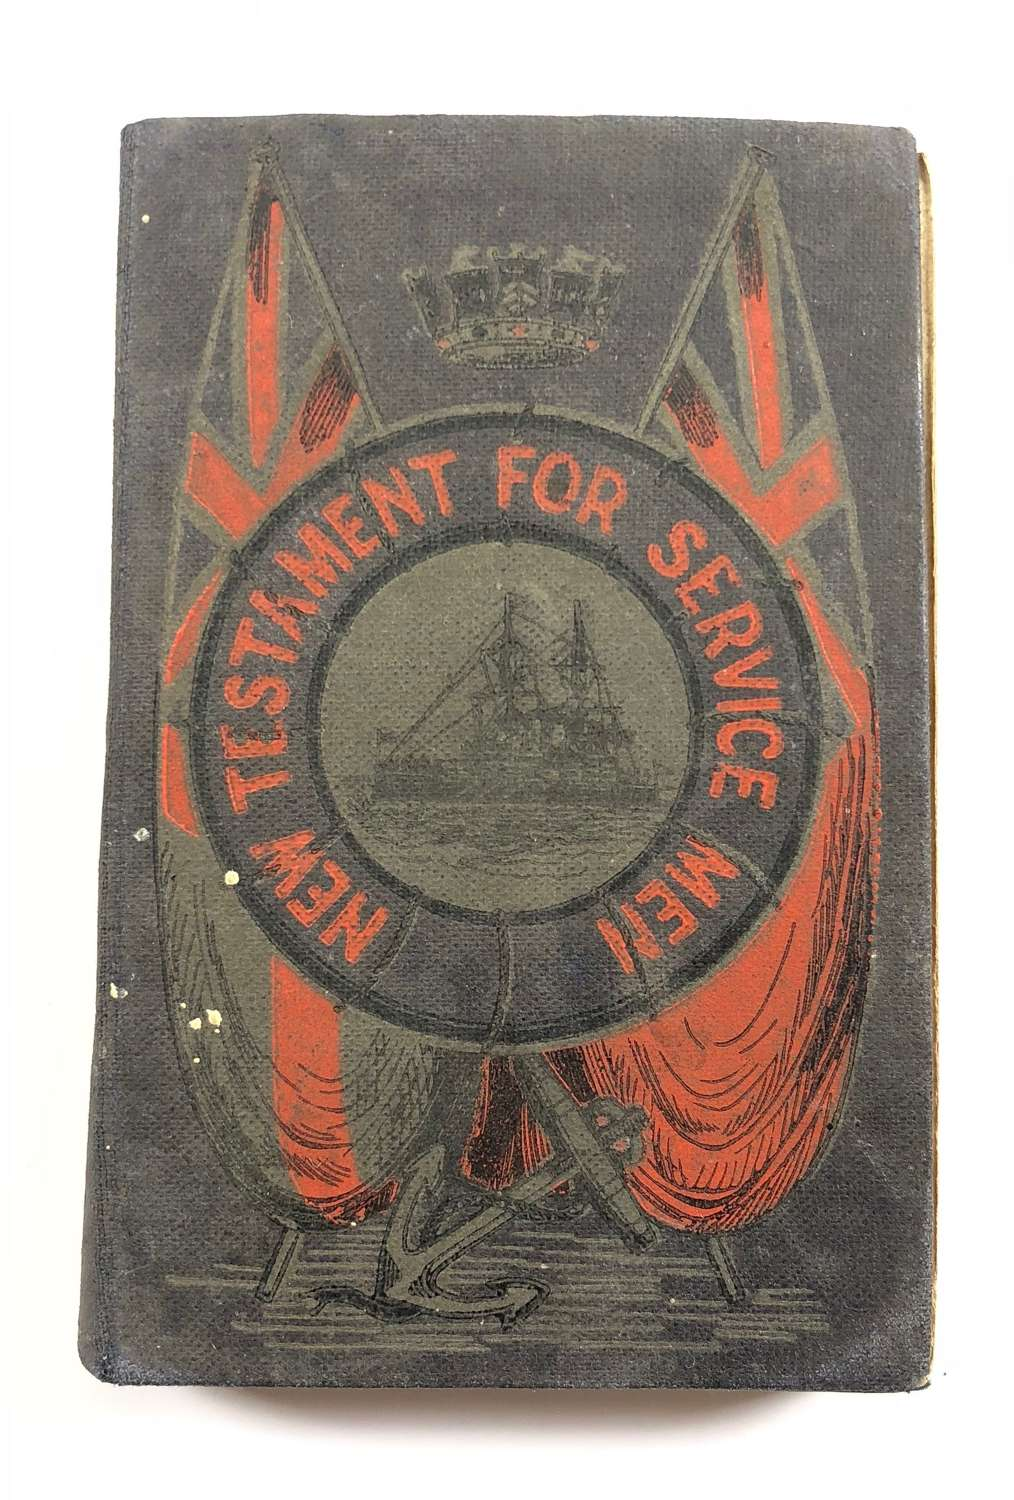 WW1 Sailor's Comfort. New Testament For Service Men.